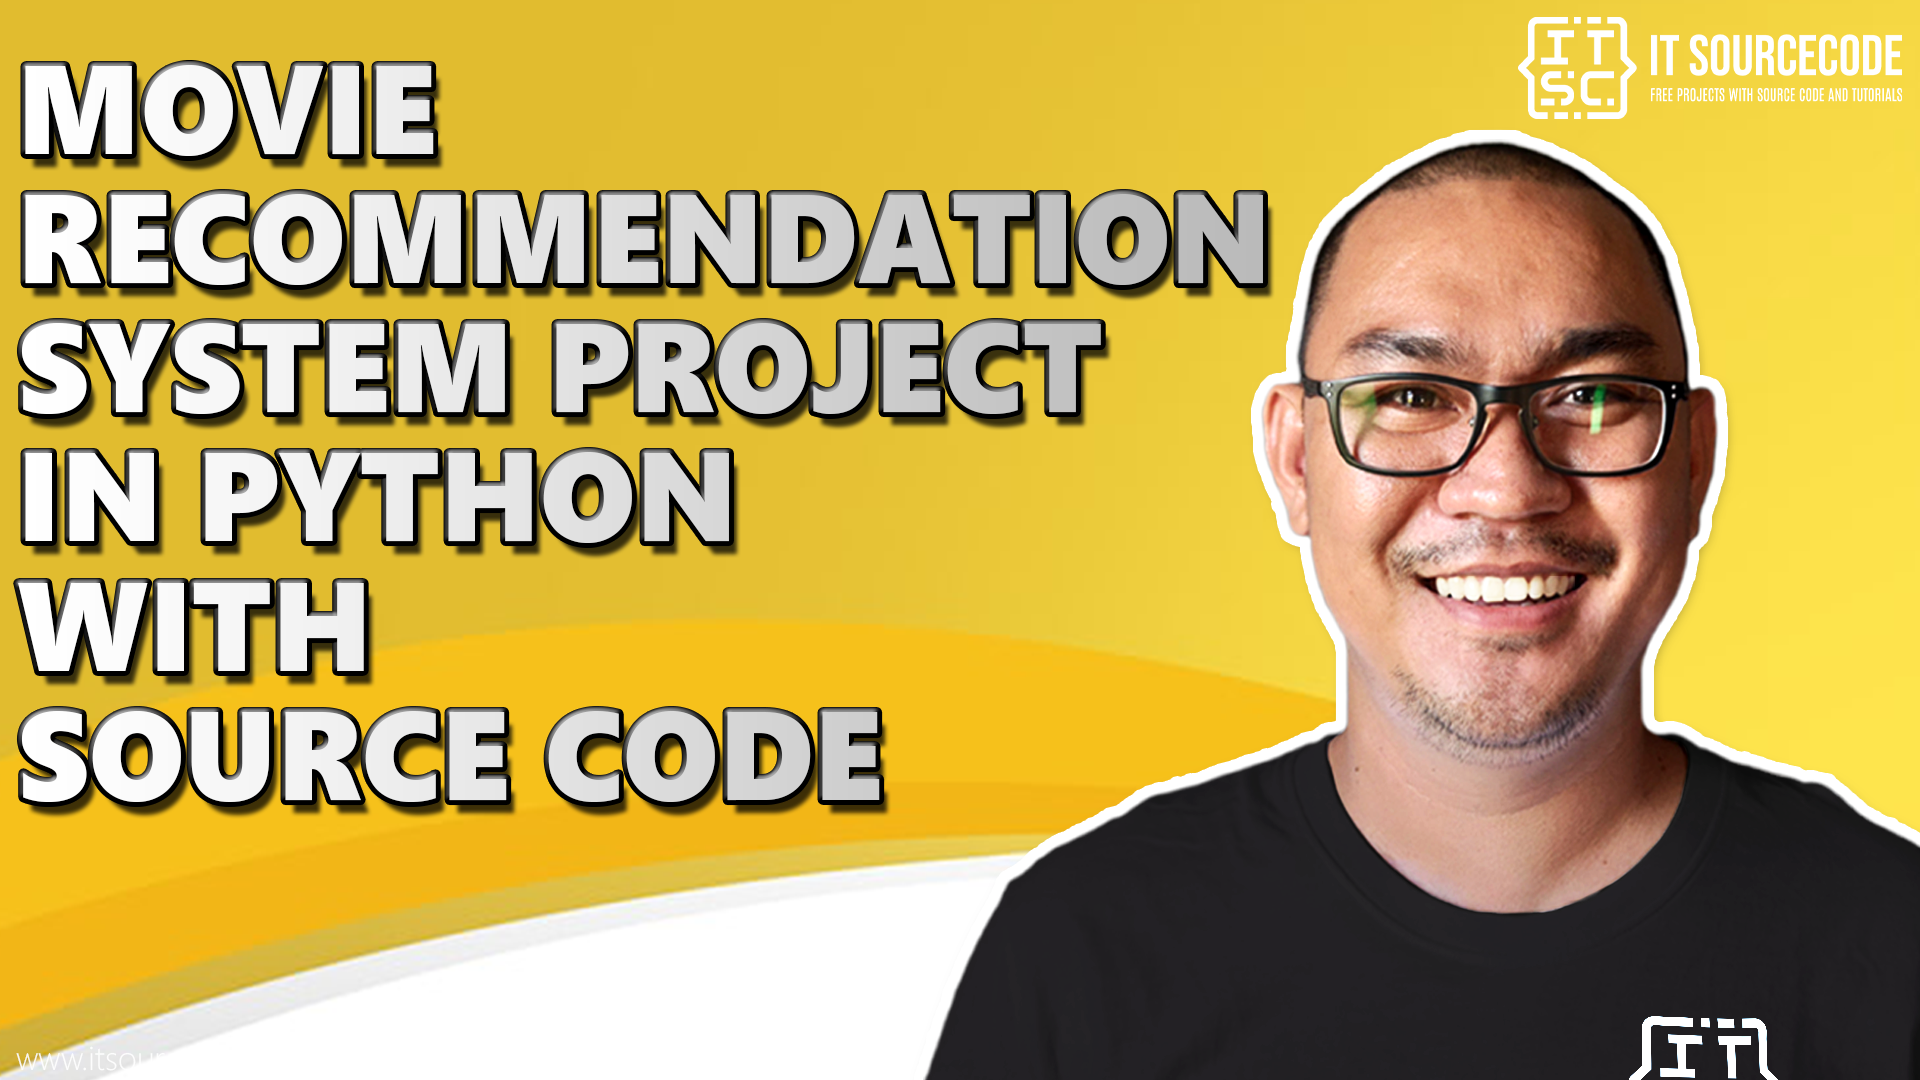 movie recommendation system project in python With Source Code